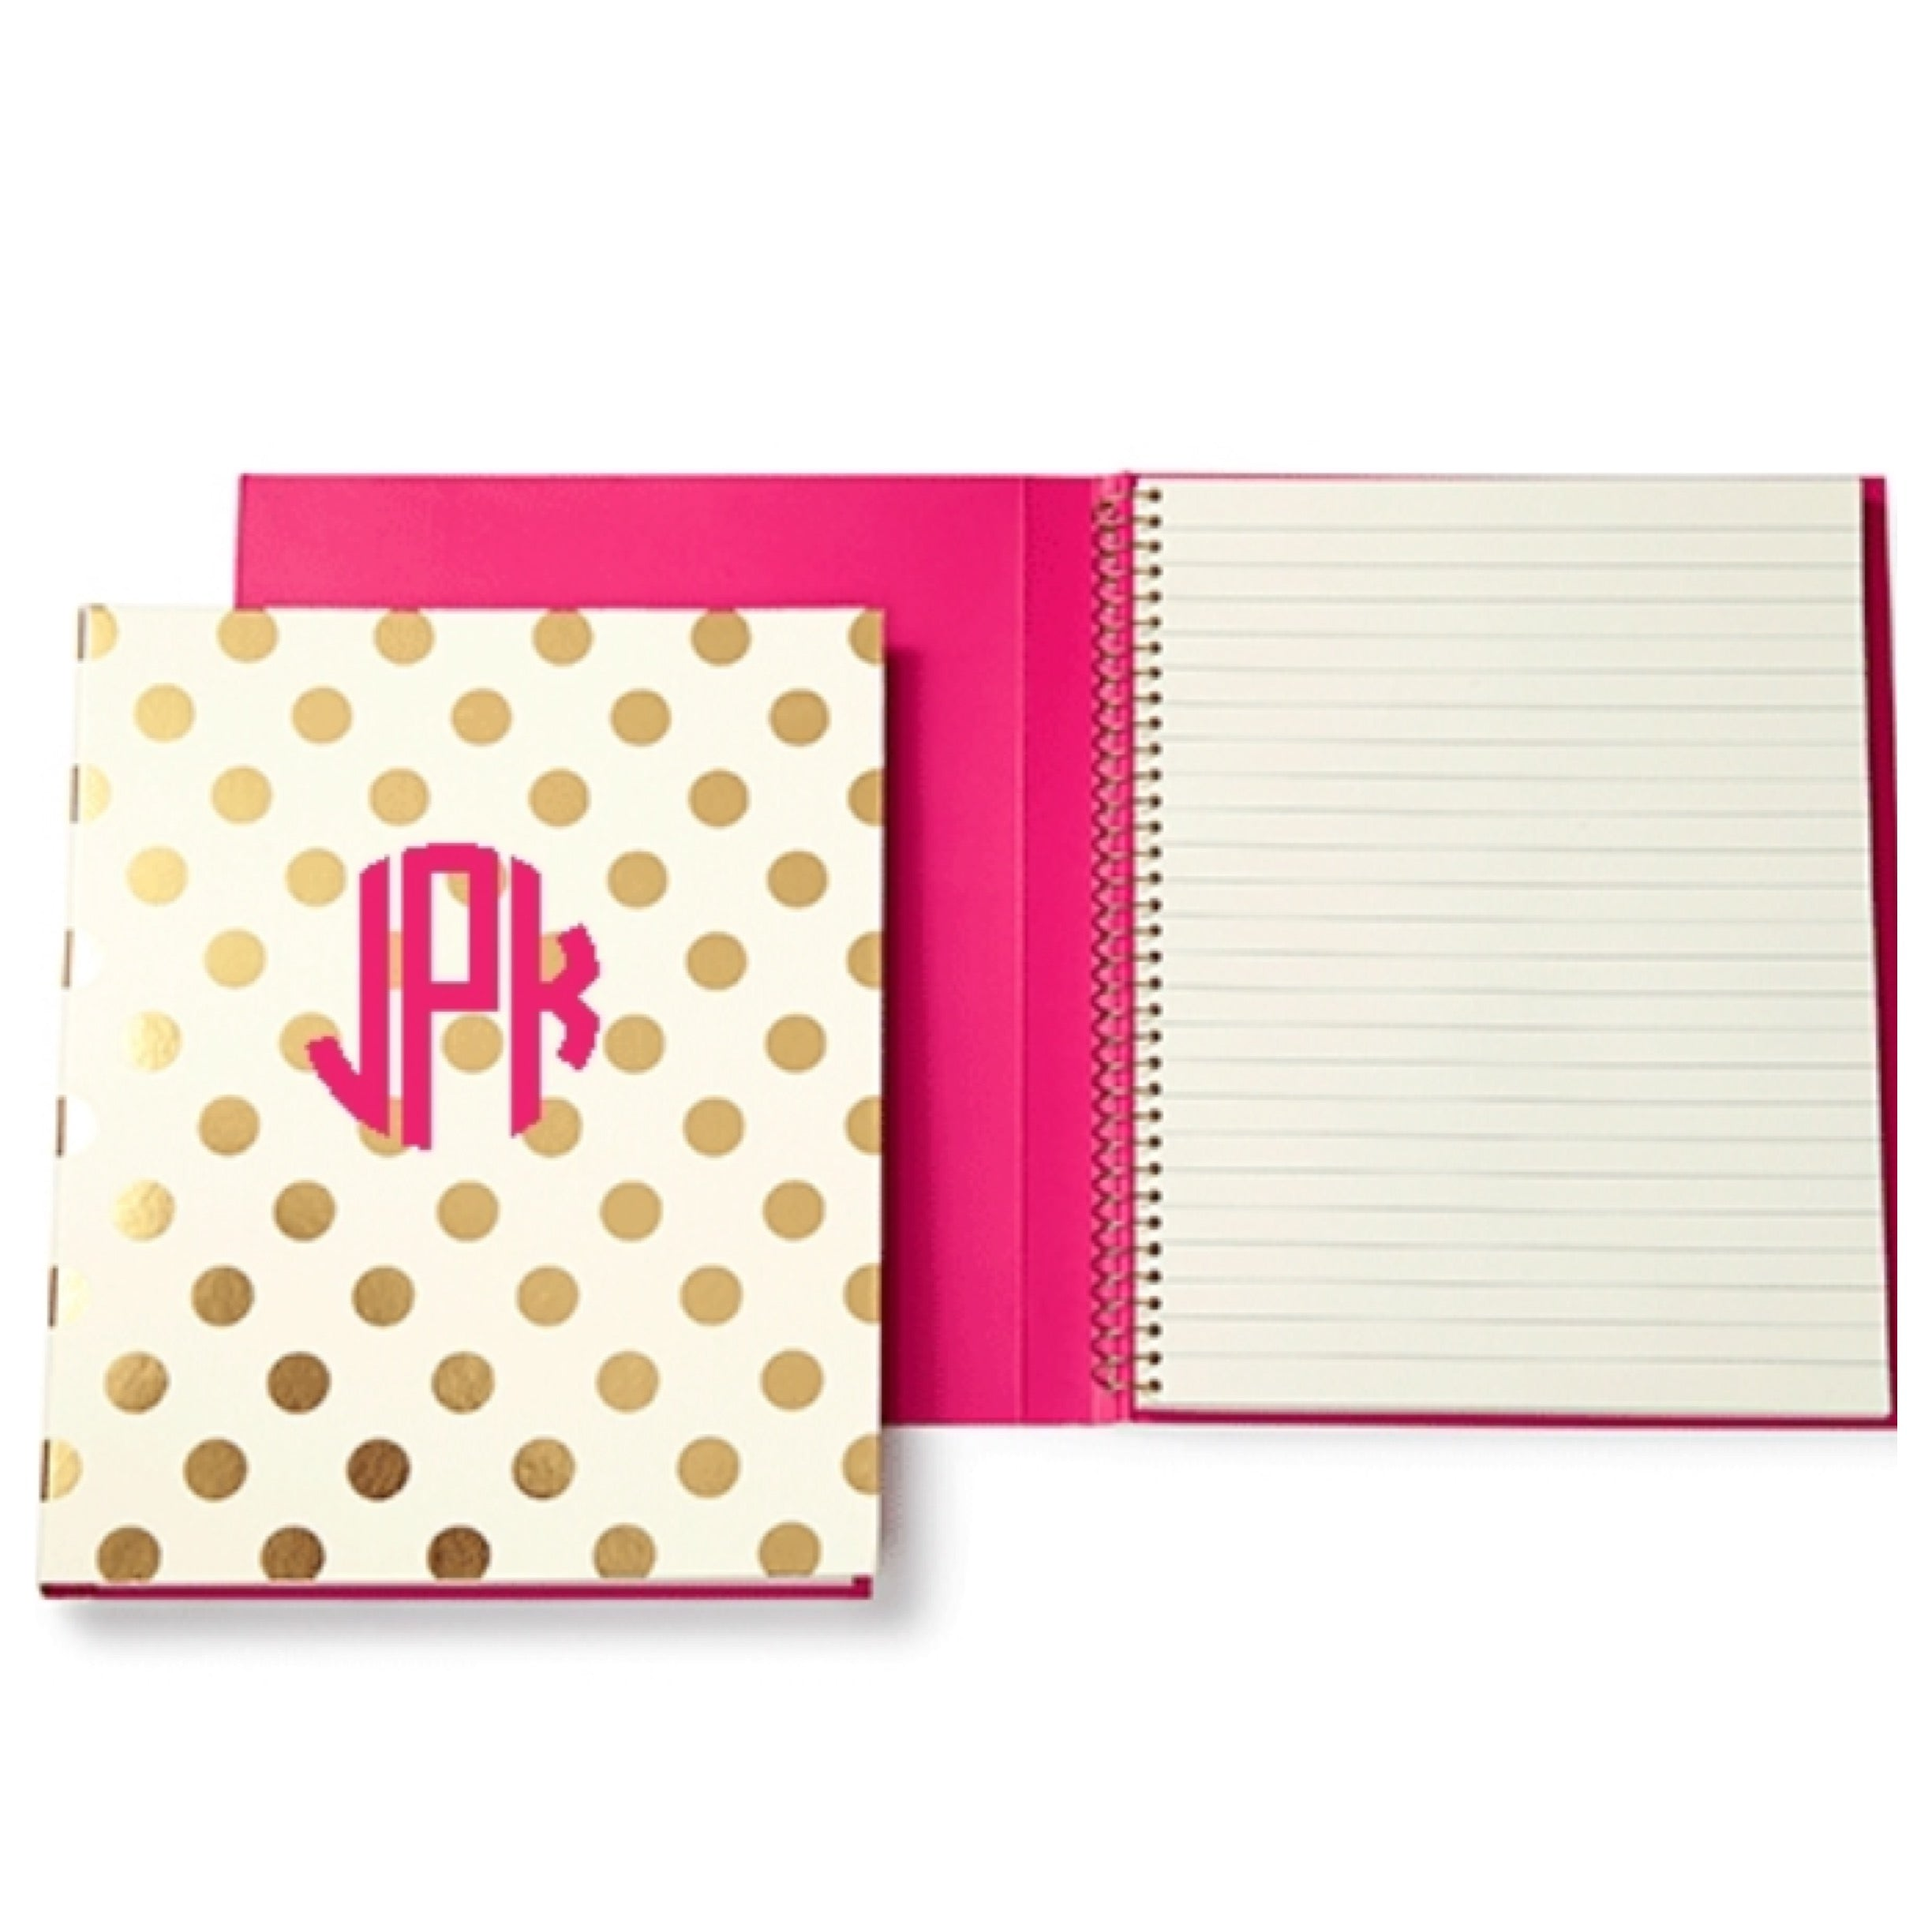 Don't get your notebook or planner mixed up with anyone else's by adding an initial or monogram